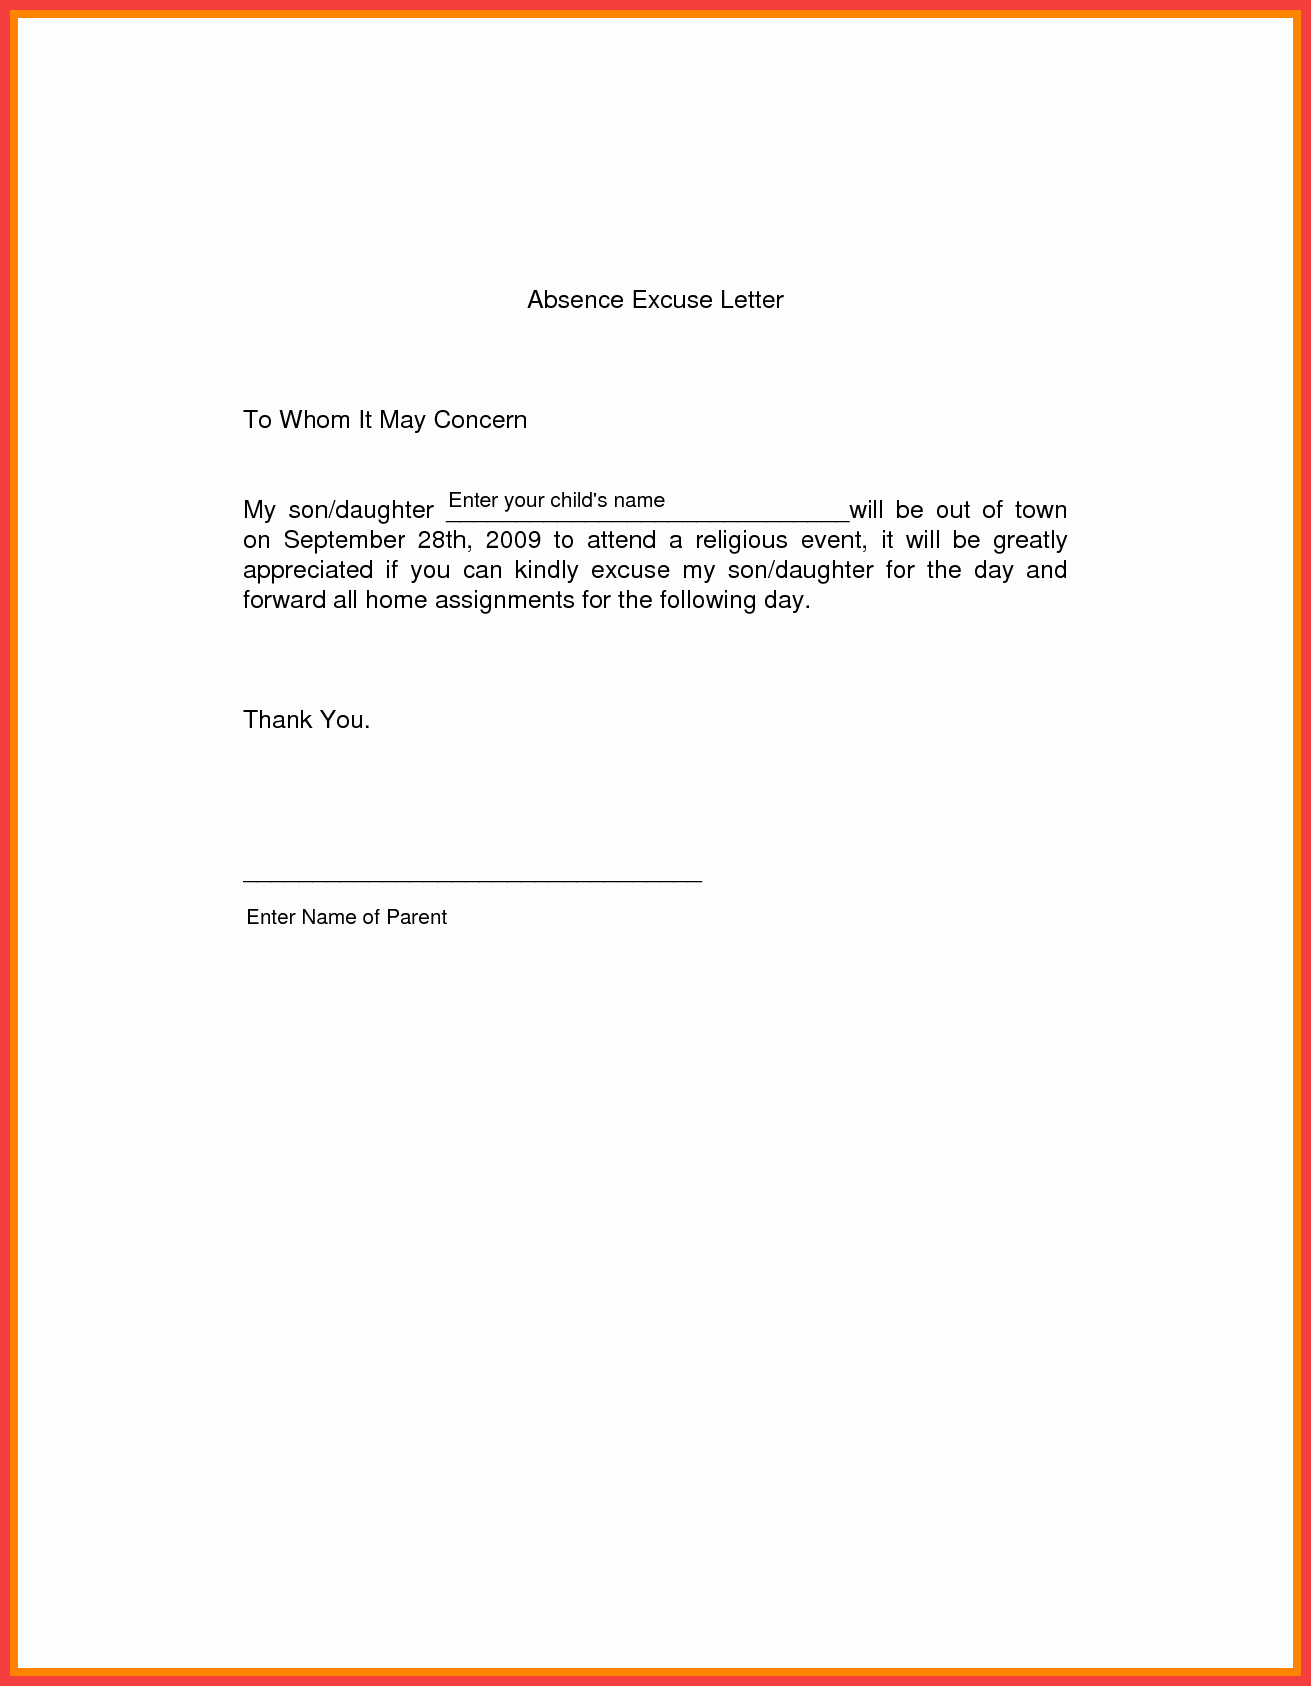 School Absence Excuse Letter Template Inspirational School Excuse Letter Sample